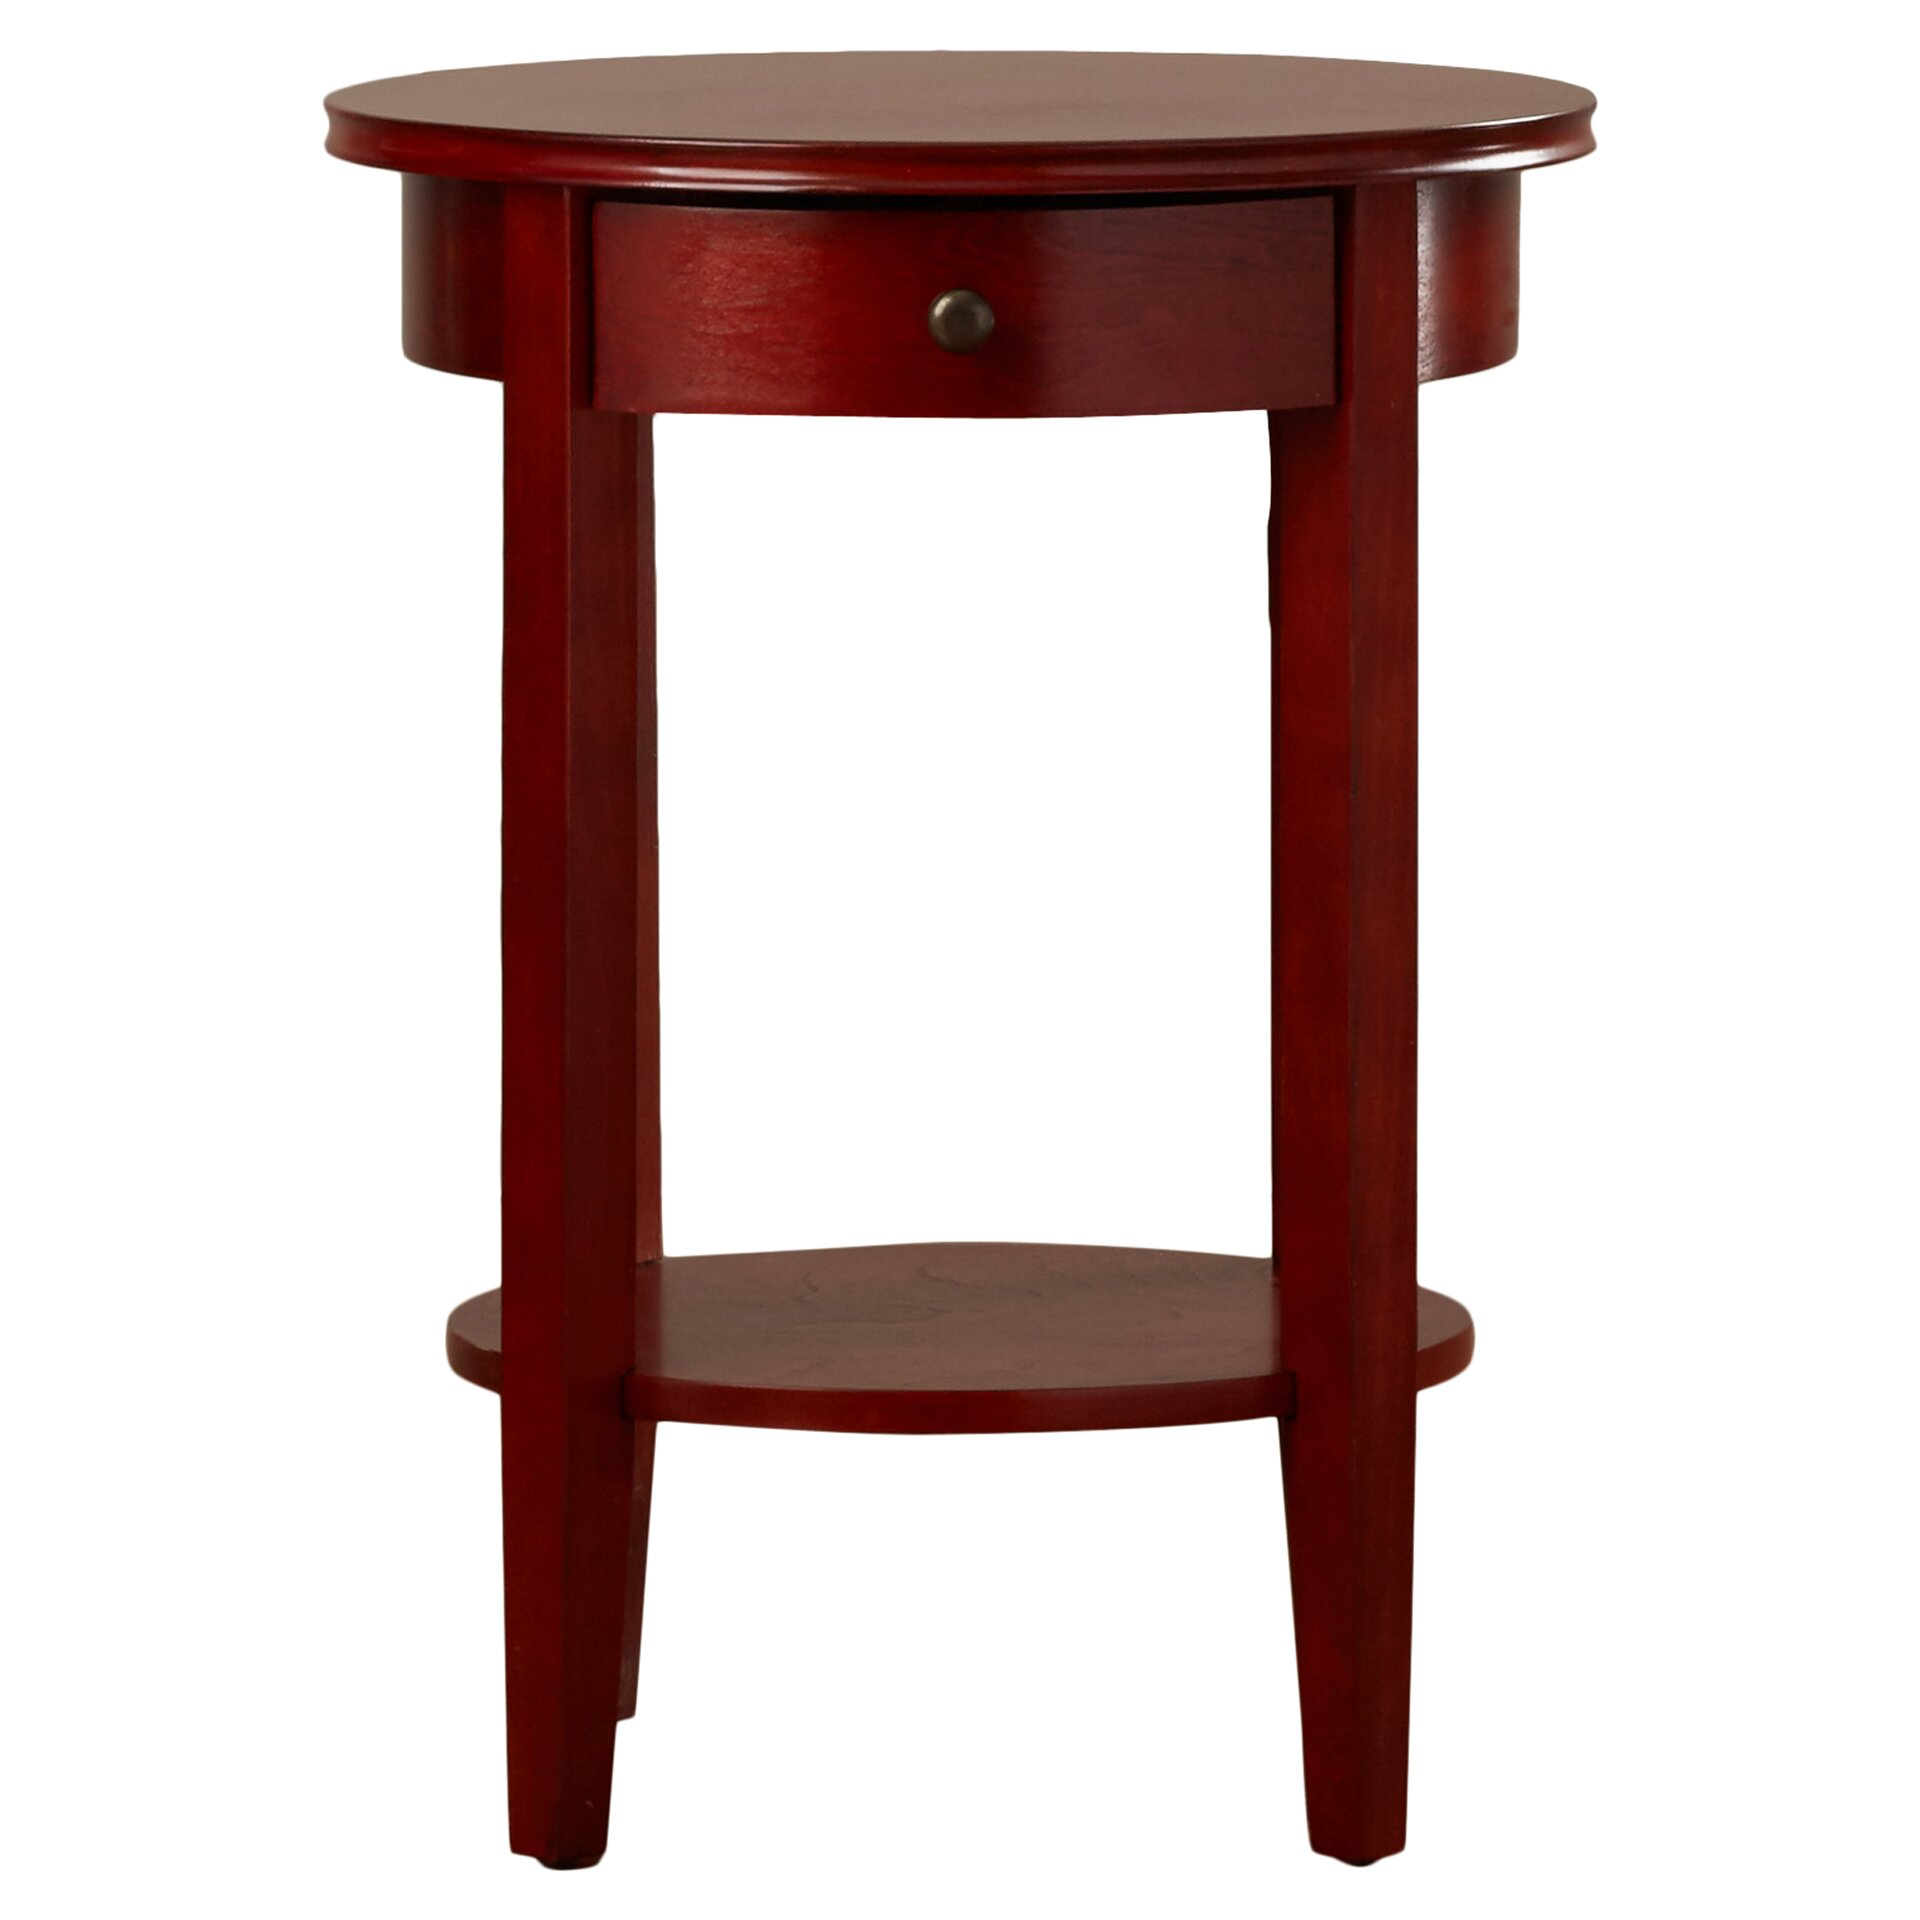 Andover mills kerry 1 drawer end table reviews wayfair for 1 drawer table